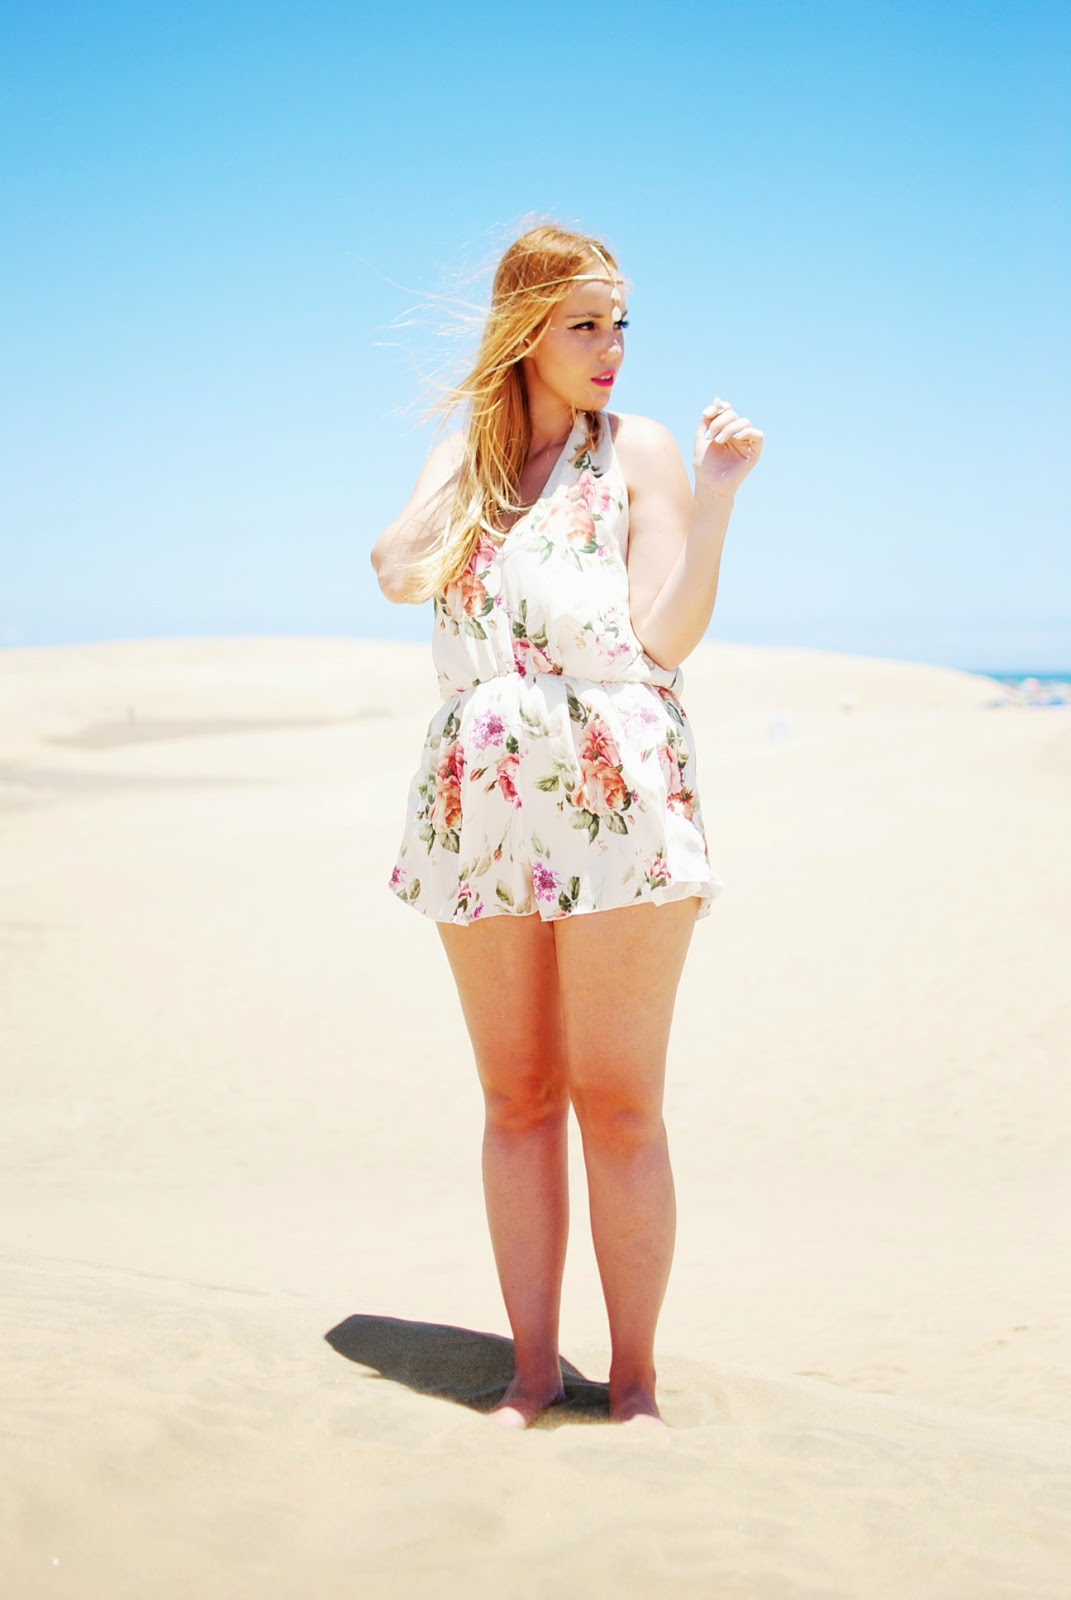 nery hdez, inlovewithfashion, playsuits, head band, jollychic, floral print, estampado flores